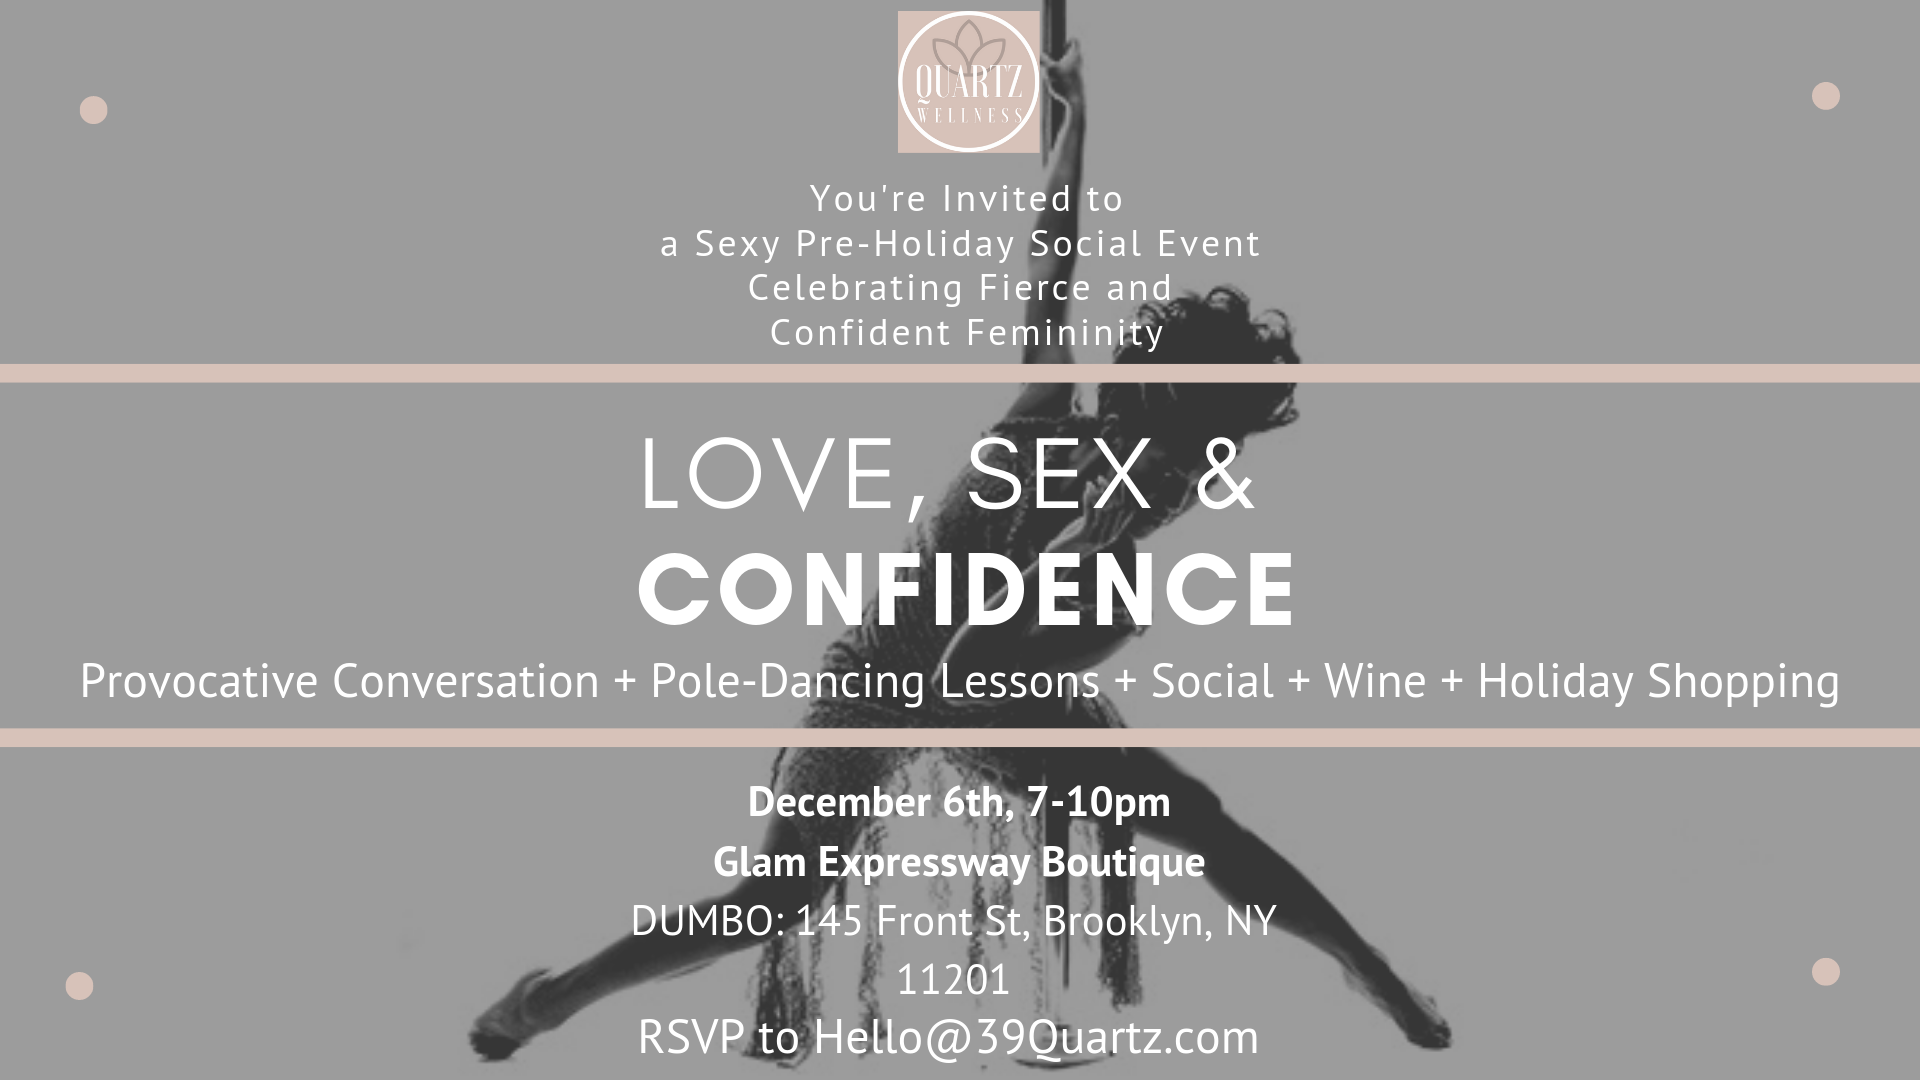 Copy of Love, Sex & Confidence IG Post.png